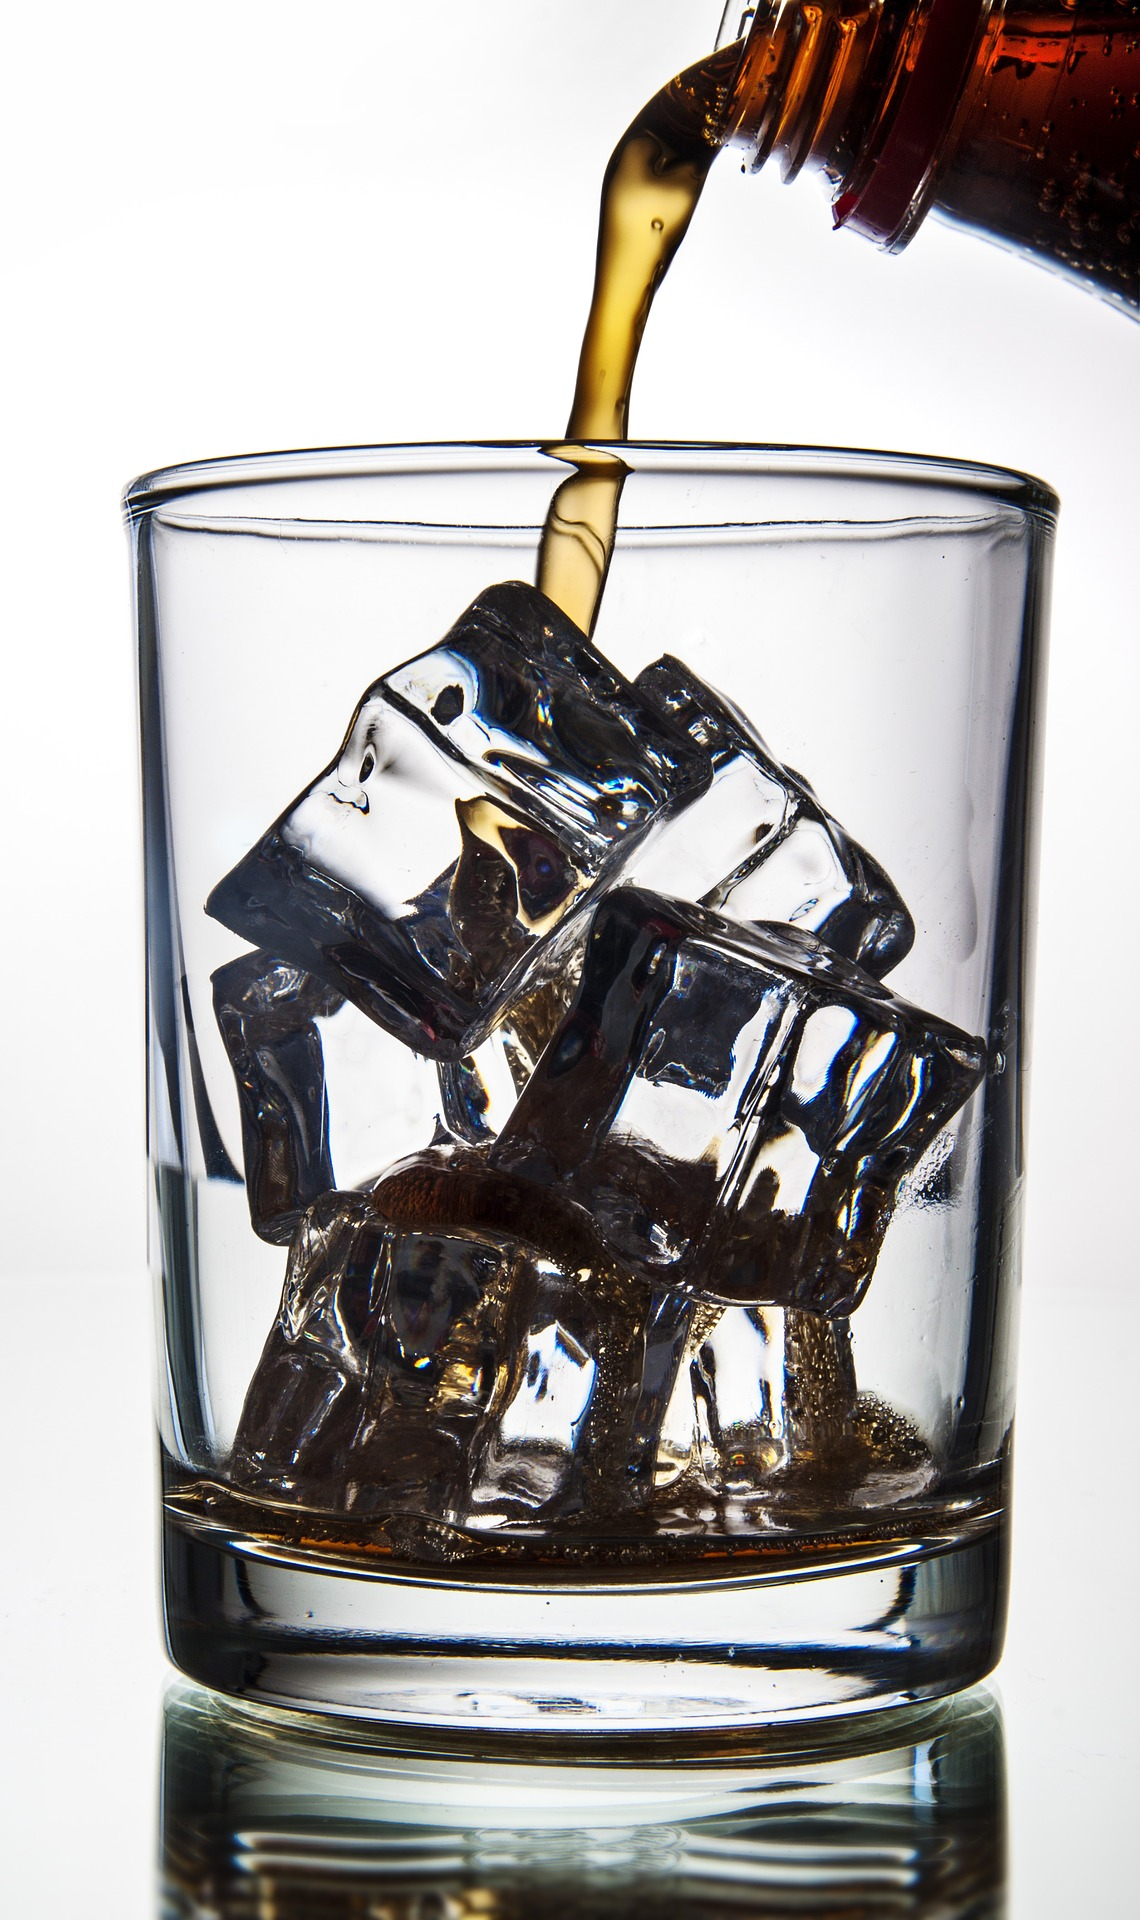 https://pixabay.com/en/cola-pouring-in-a-glass-with-ice-ice-2769457/